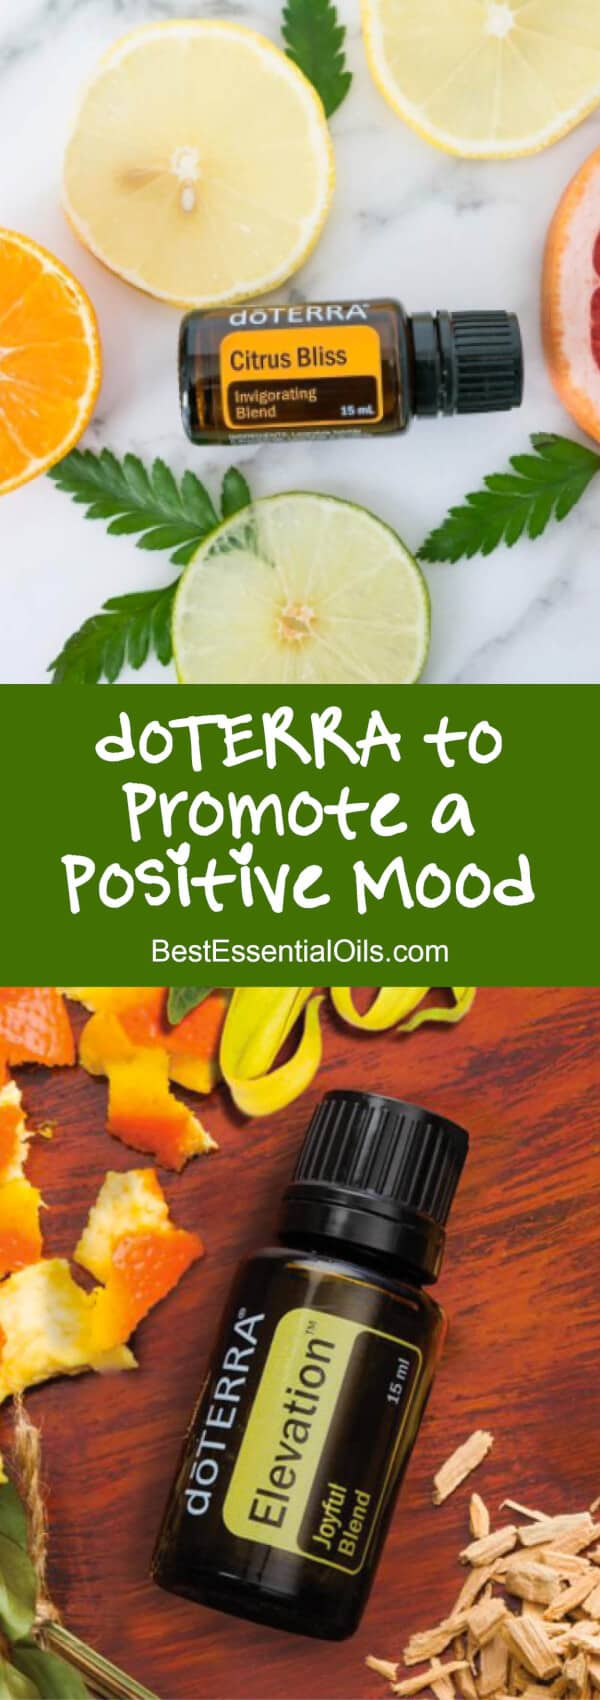 doTERRA Essential Oils to Promote a Positive Mood